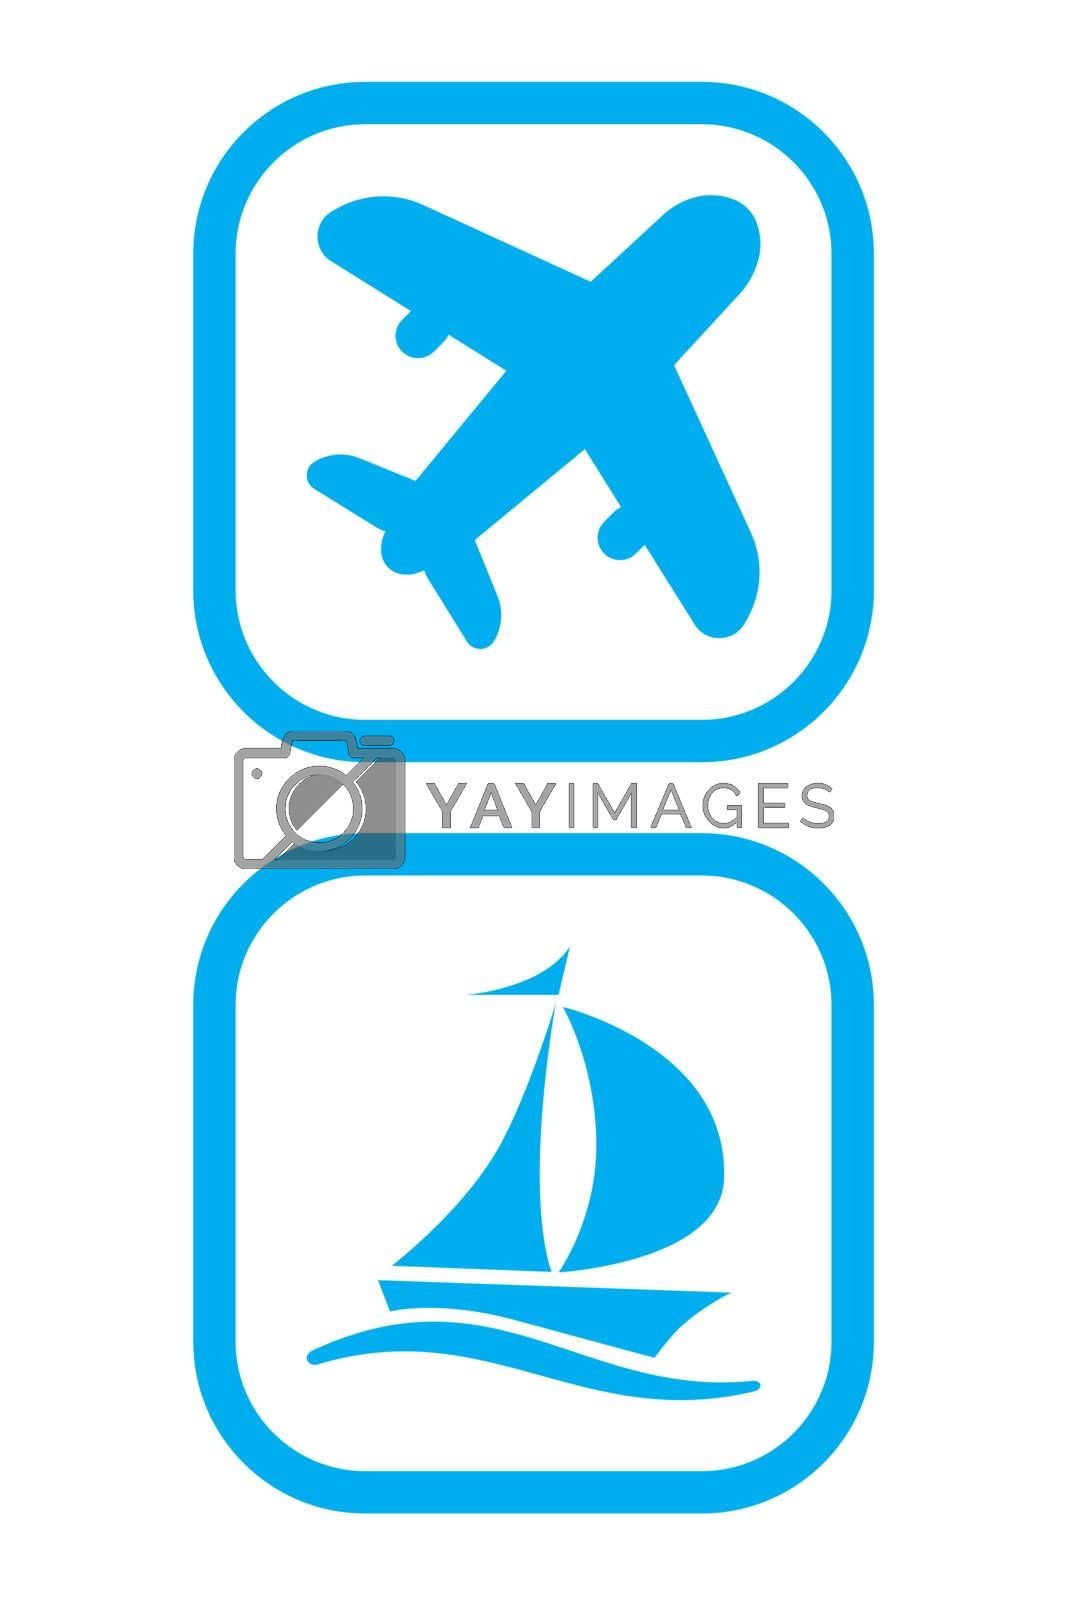 Vector Illustration of Plane and Ship Icons